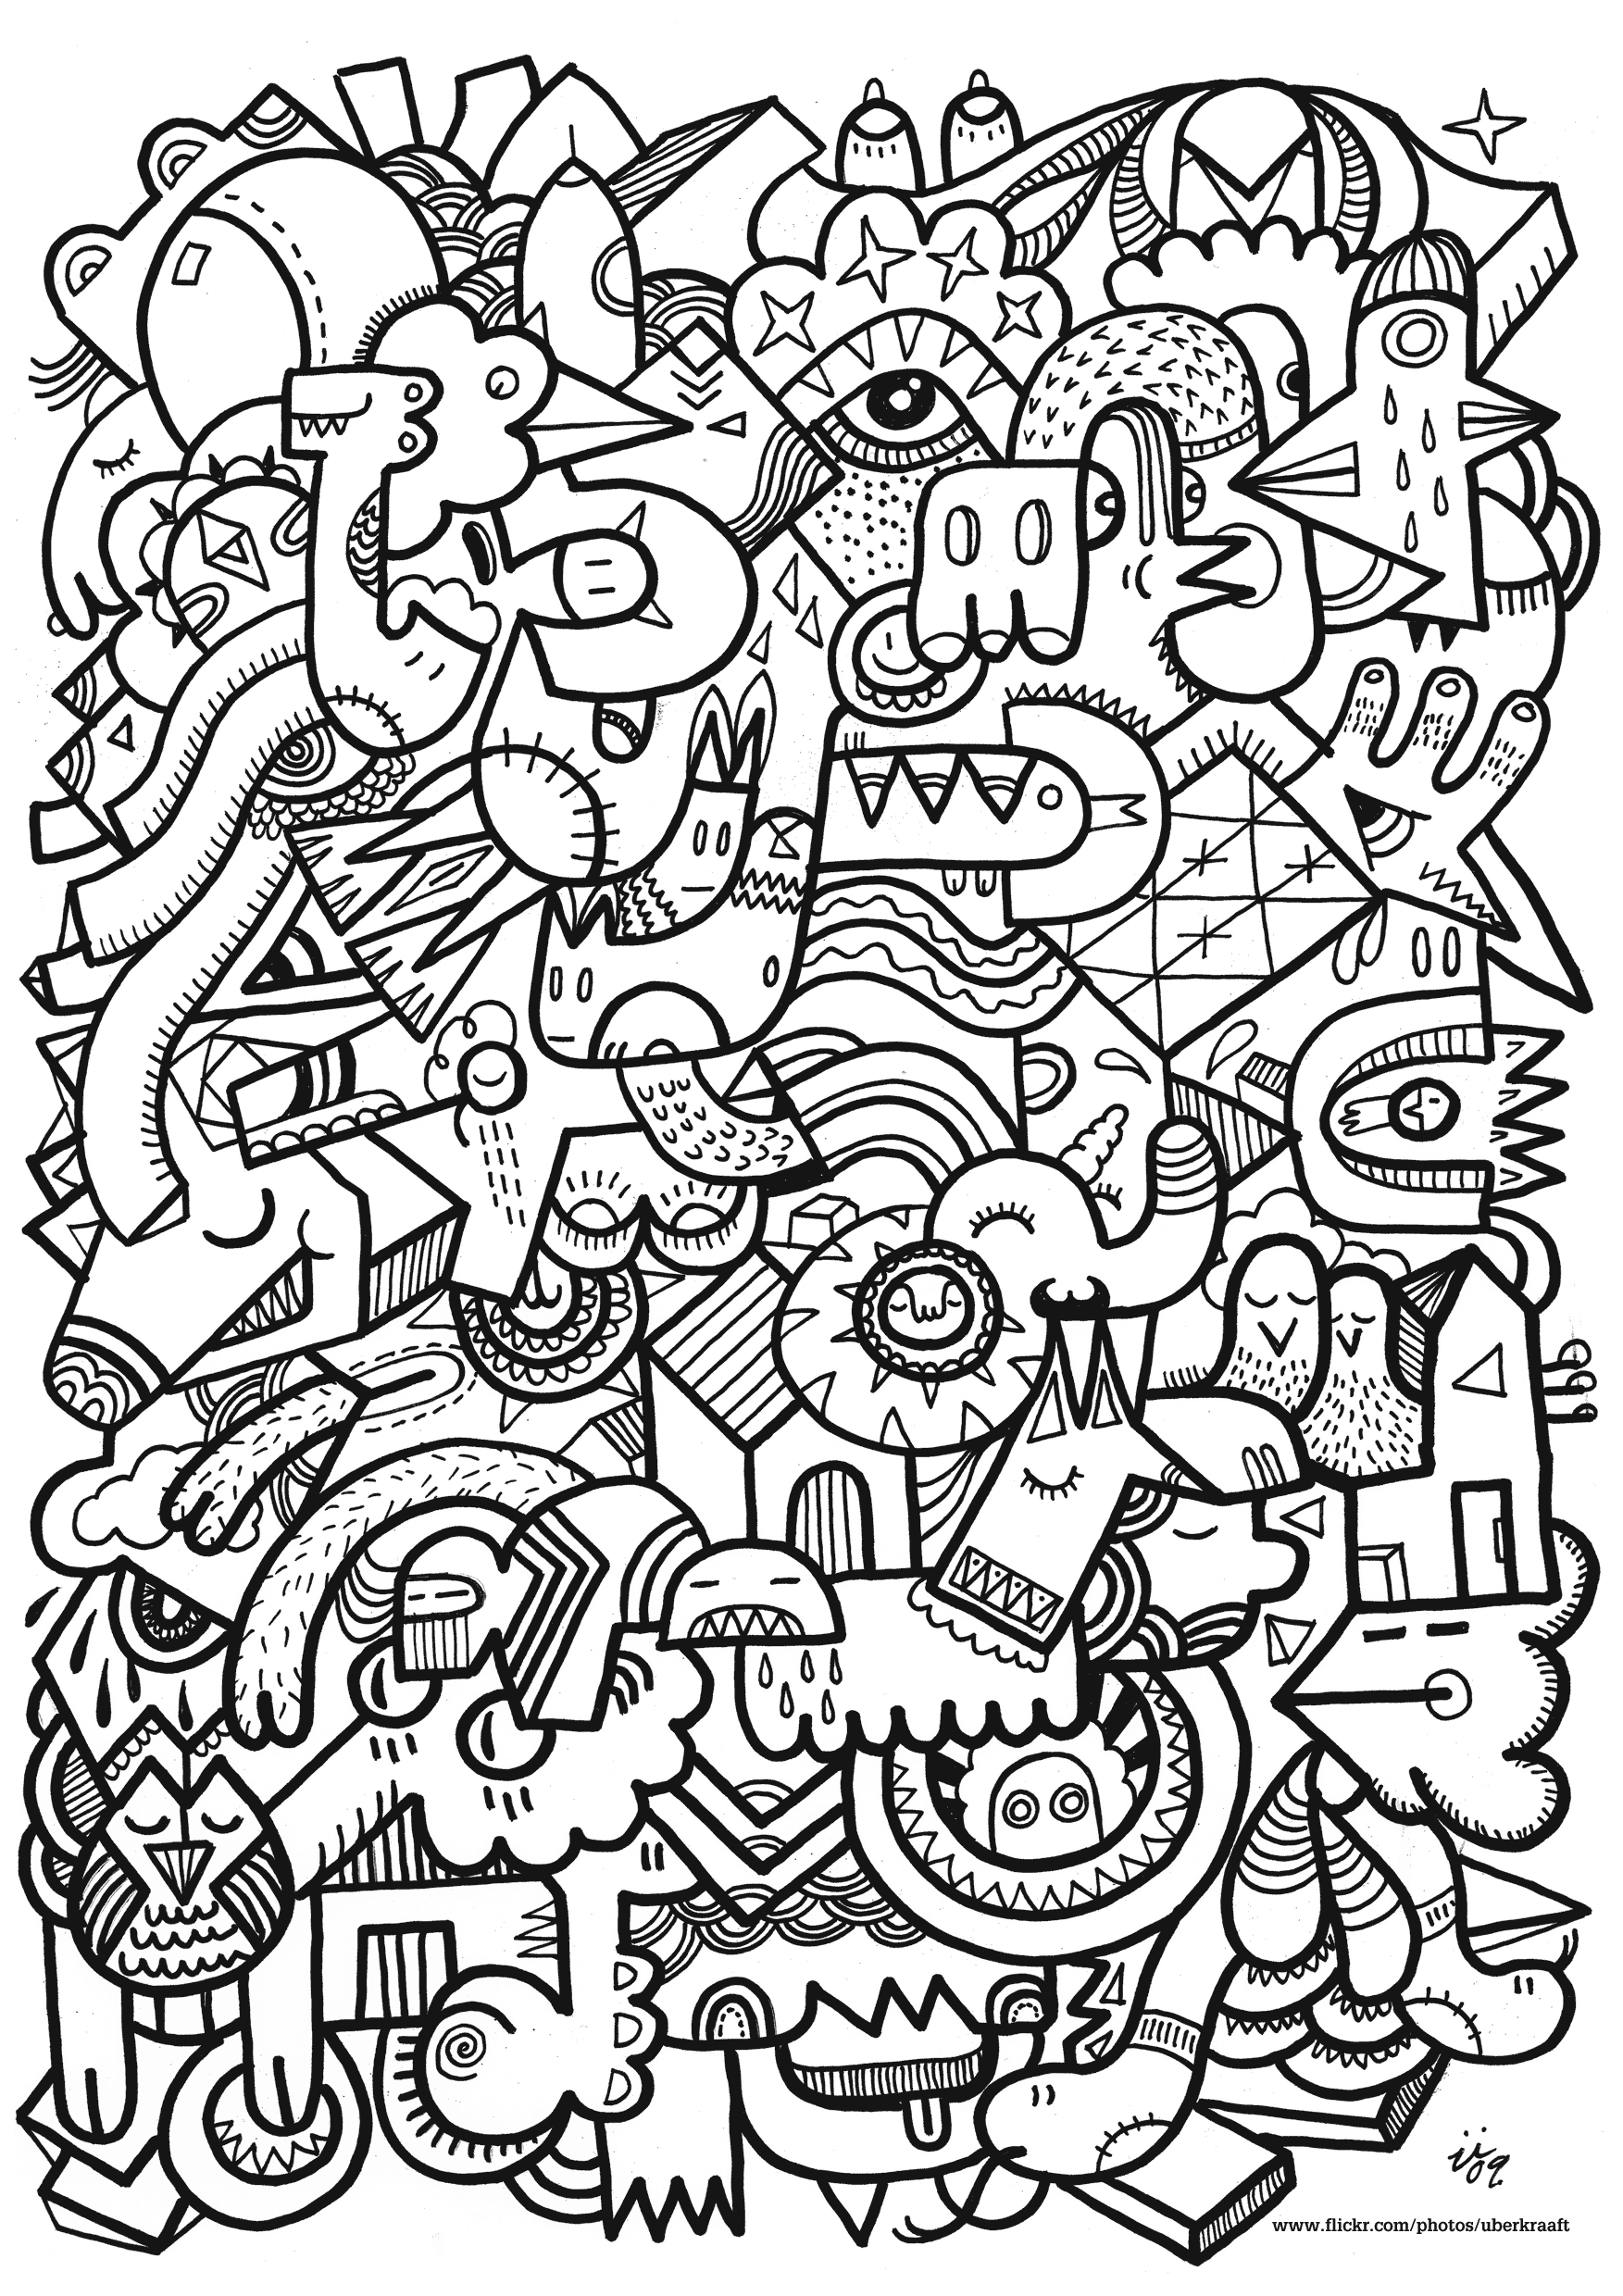 20 dessins de coloriage adulte anti stress imprimer - Coloriage anti stress a imprimer ...